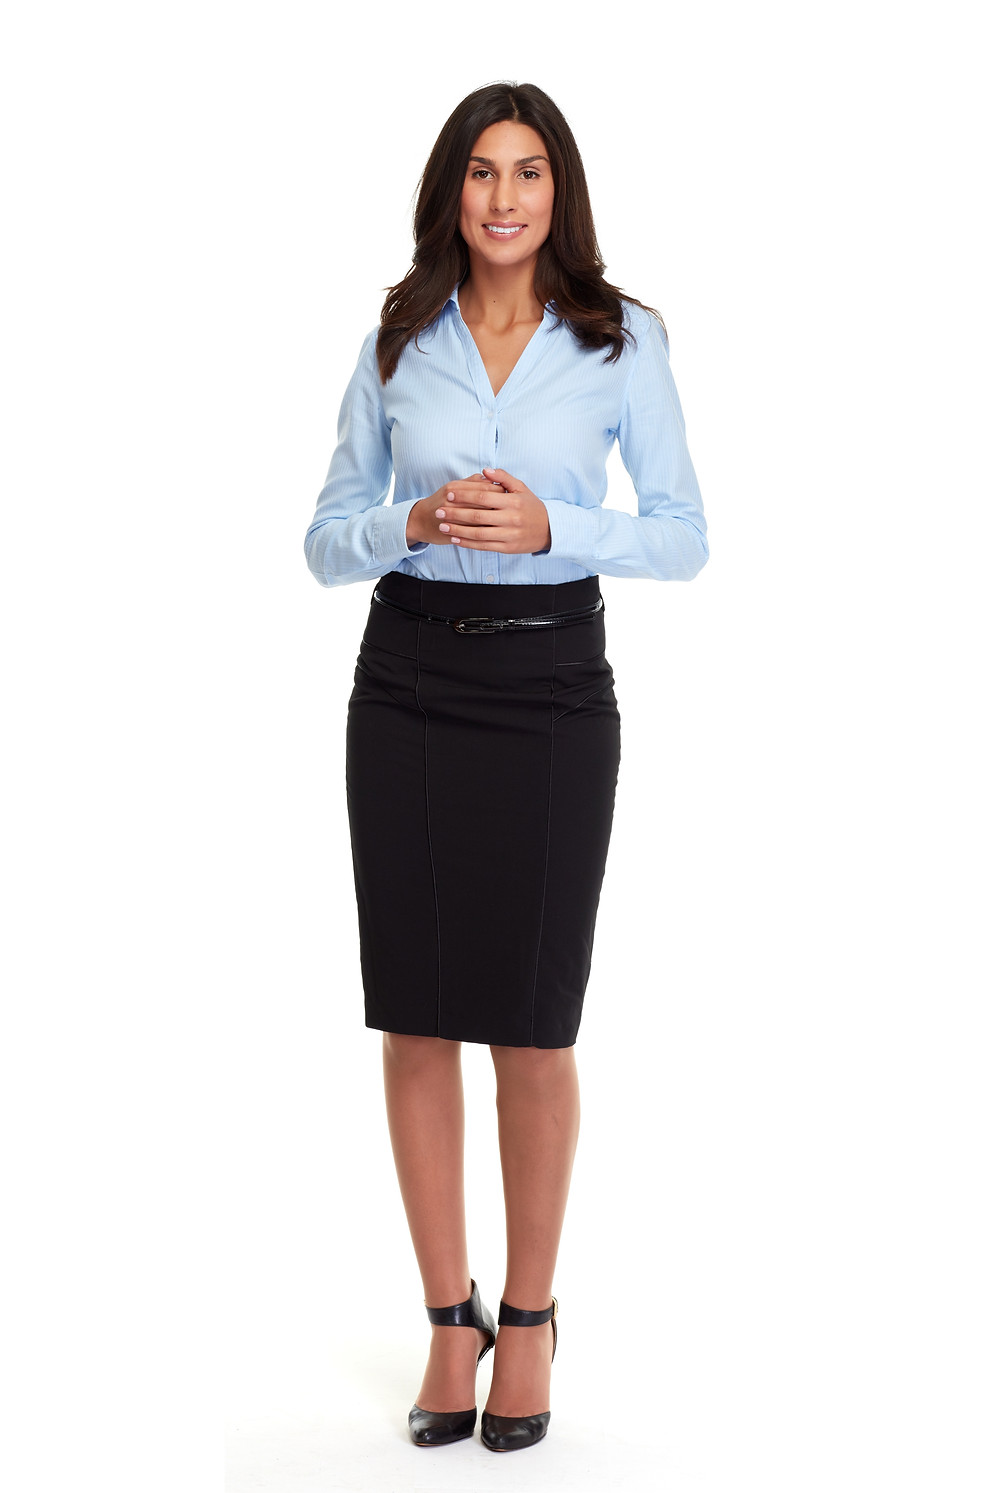 Dressing for a felony-friendly job interview.